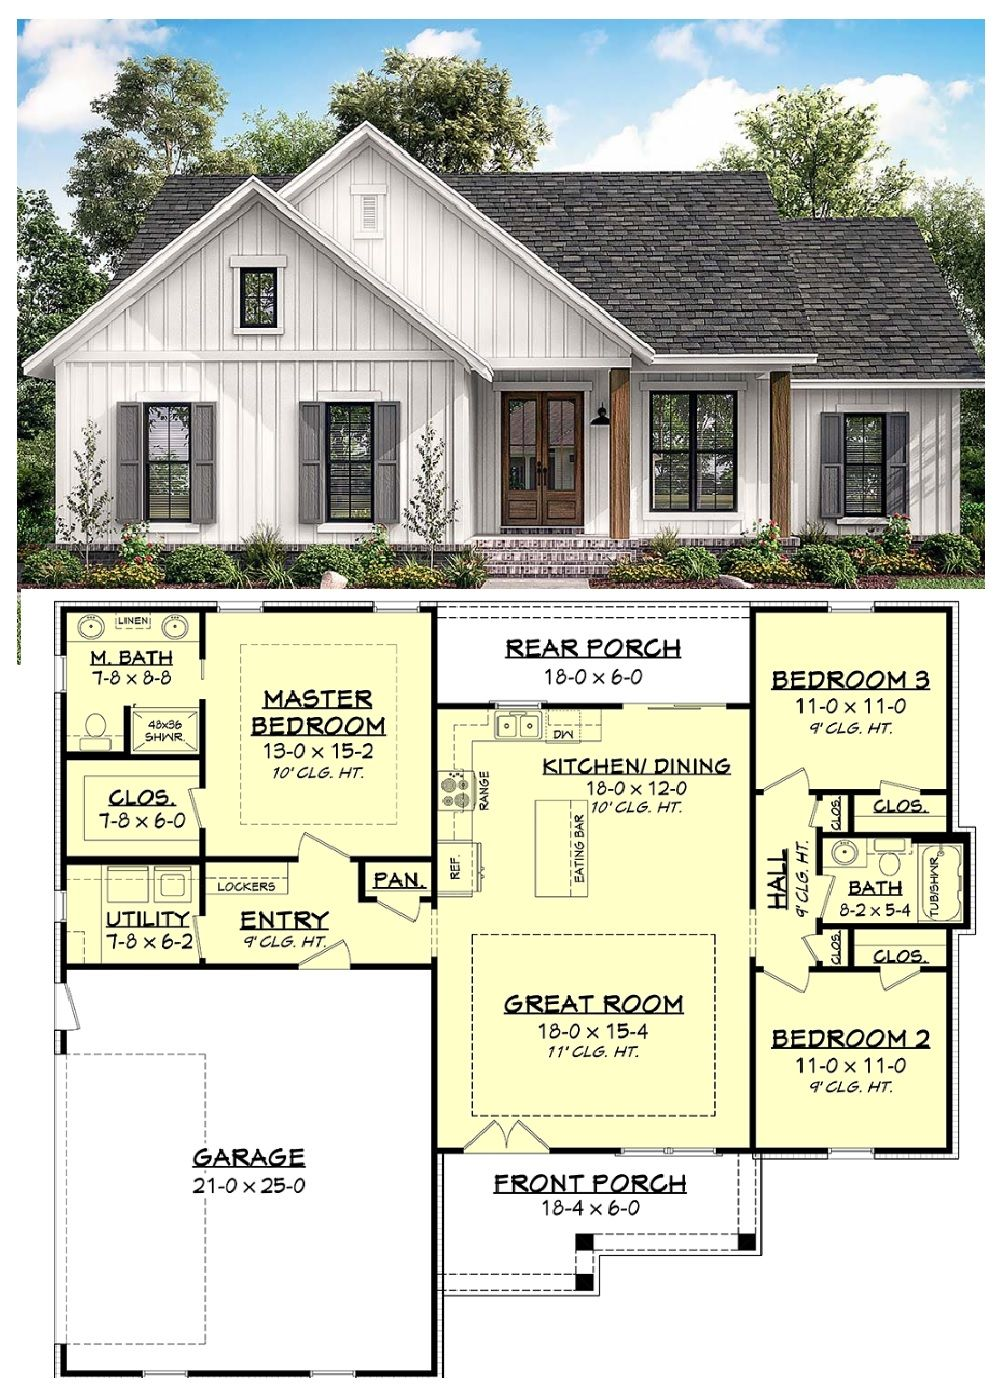 New House Plan Country Style Home With 3 Bedrooms And 2 Bathrooms In A 1400 Square Foot Floor Plan In 2020 House Plans Country House Plans Farmhouse Plans